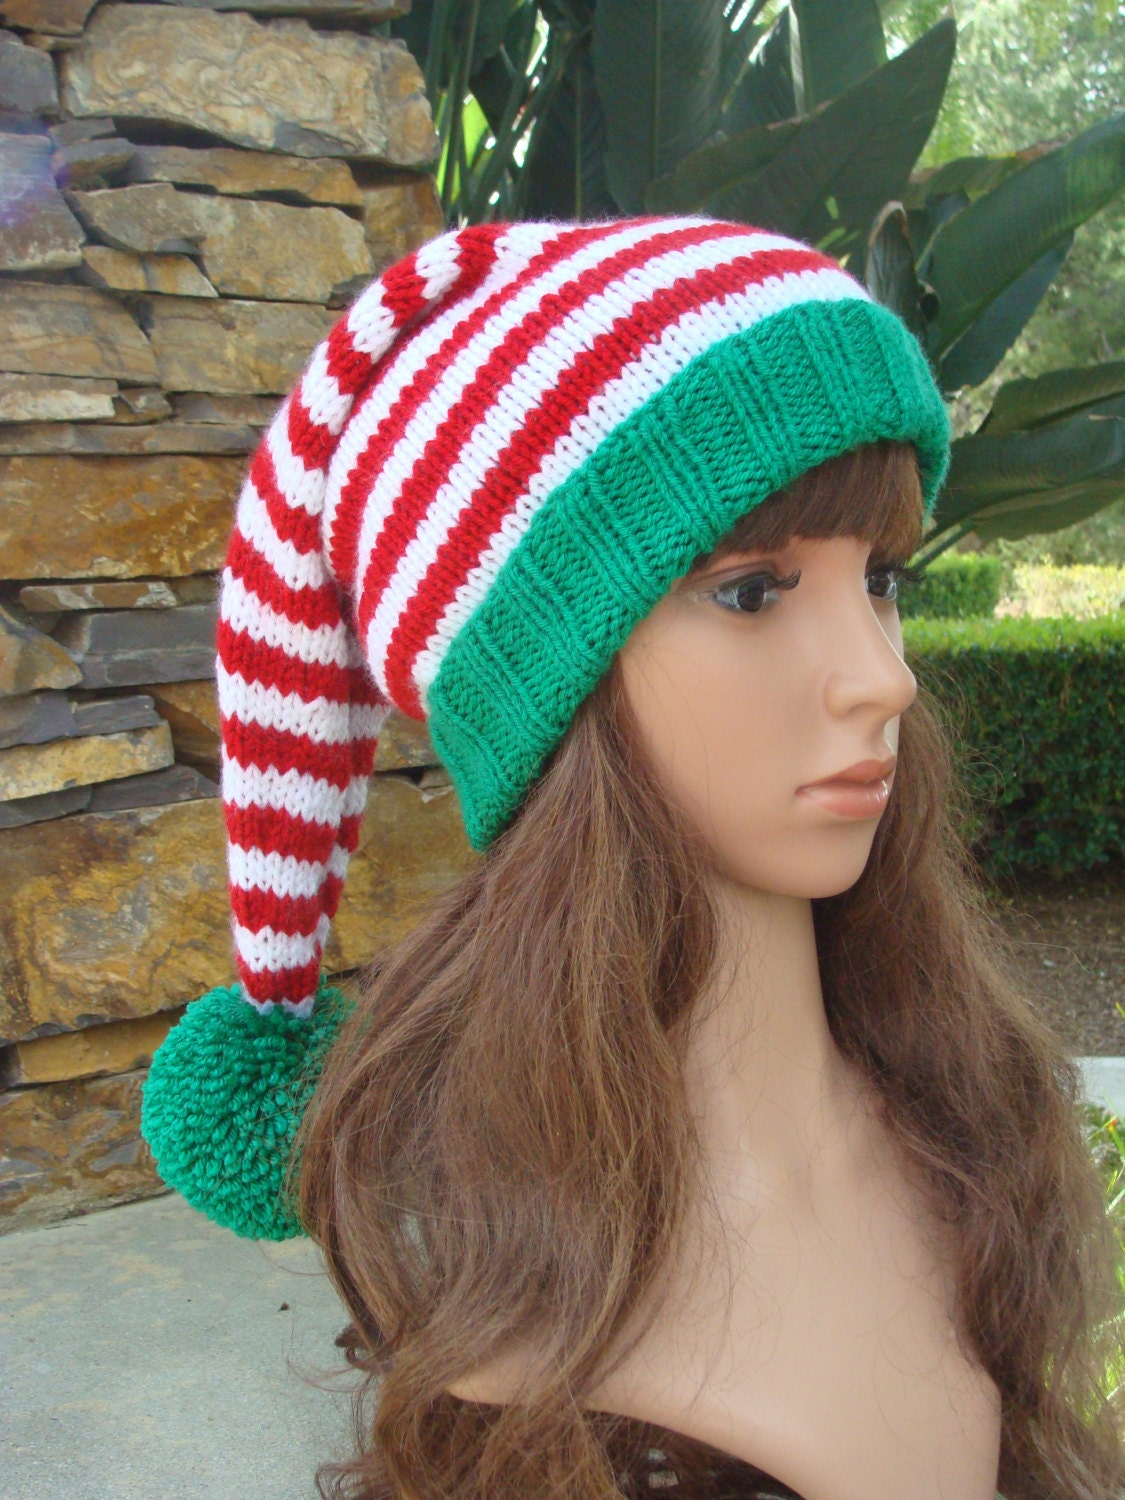 DIY Knitting PATTERN 151: Santa Knit Hat with Pom-pom | Etsy